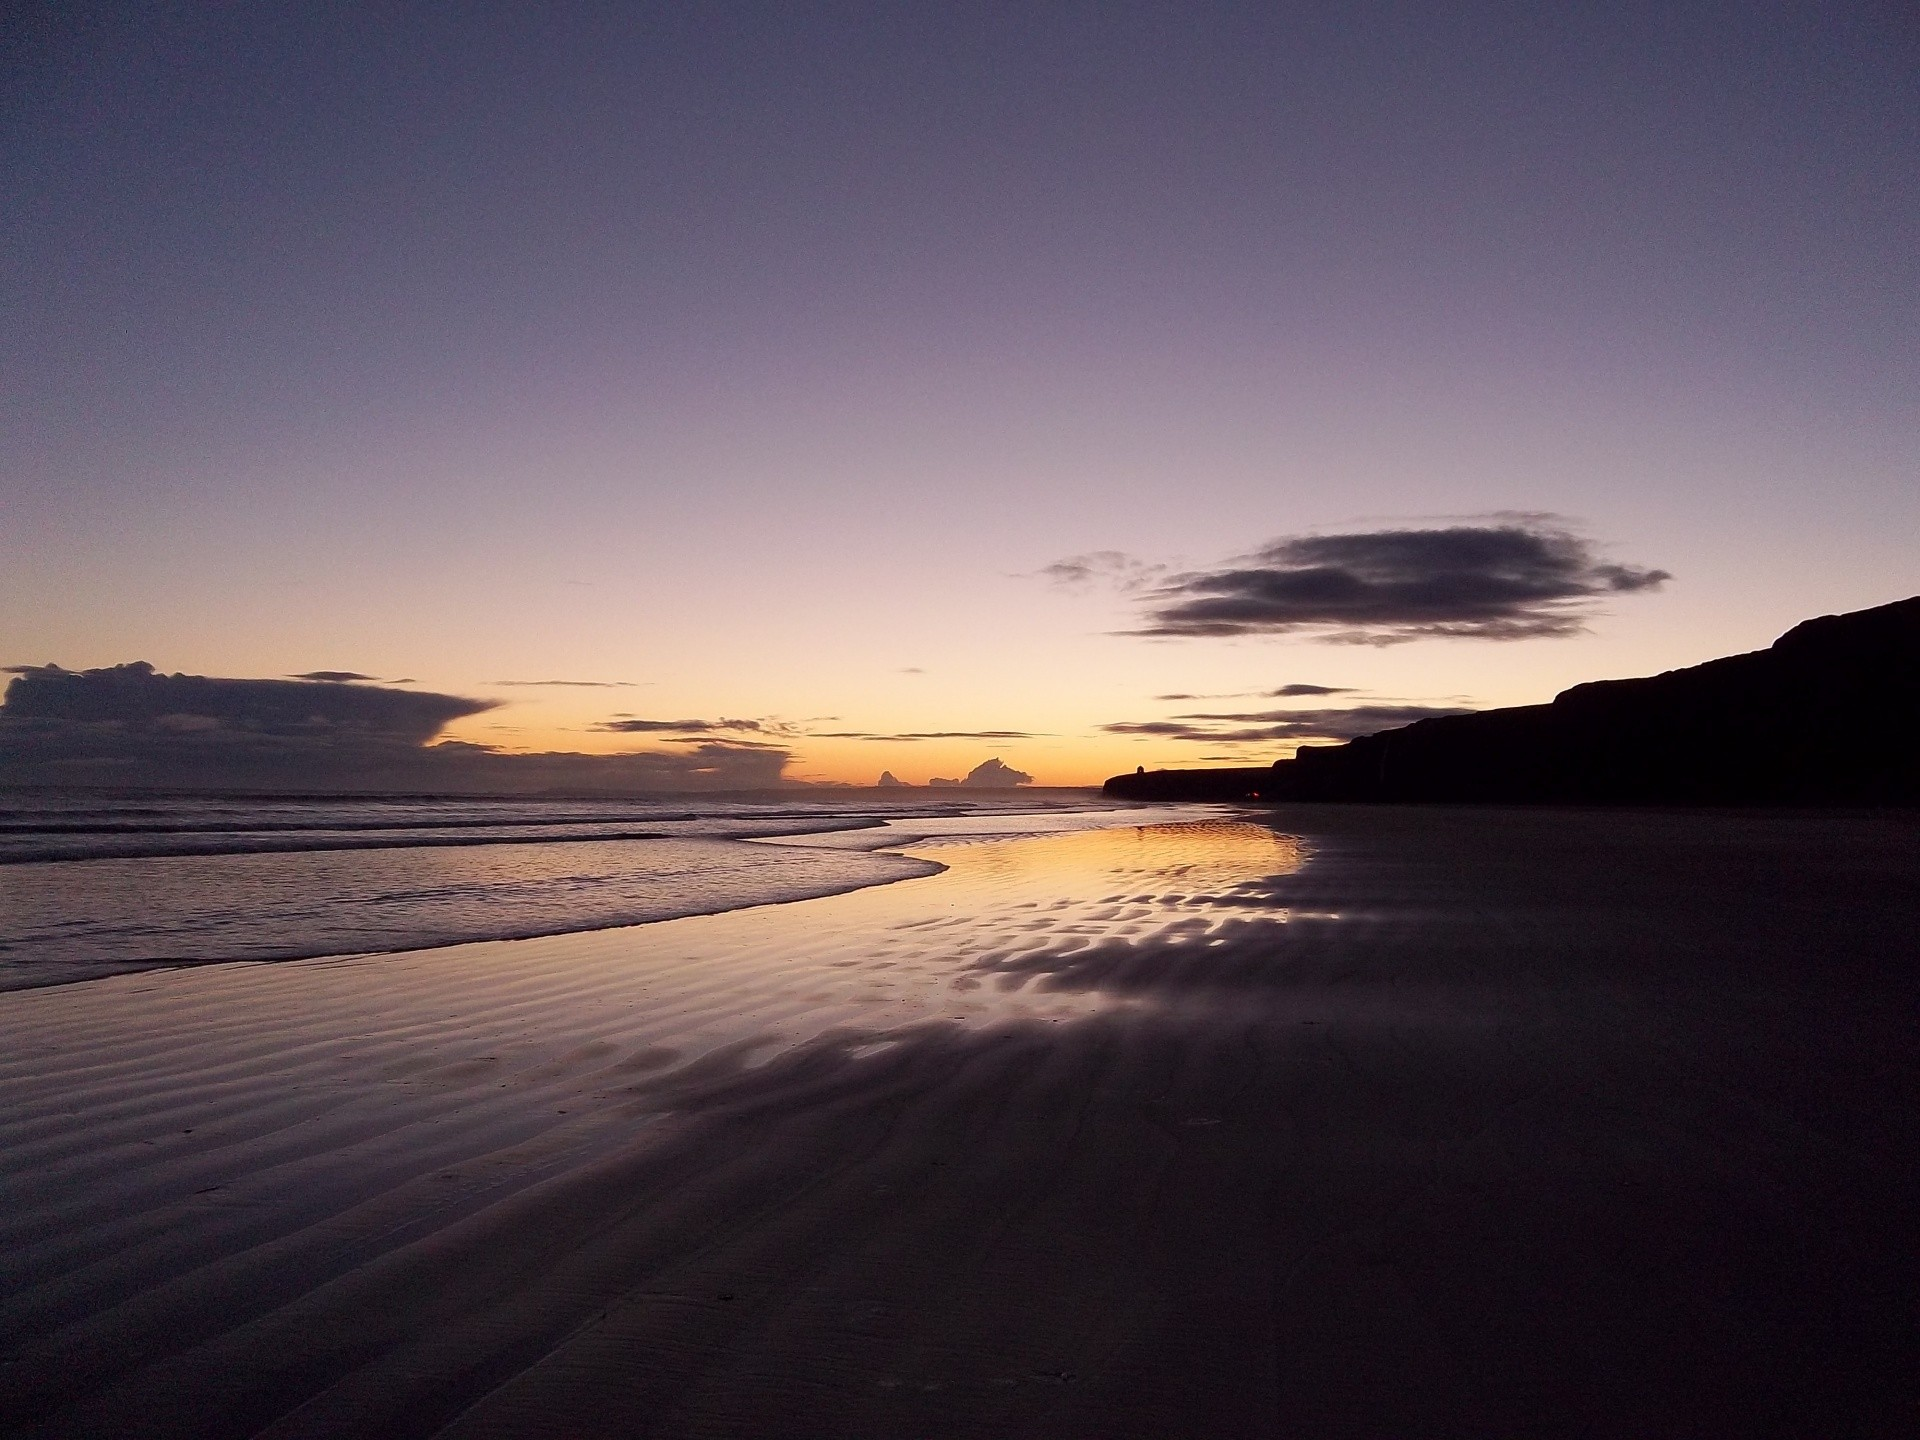 Shell's photo of Benone Strand